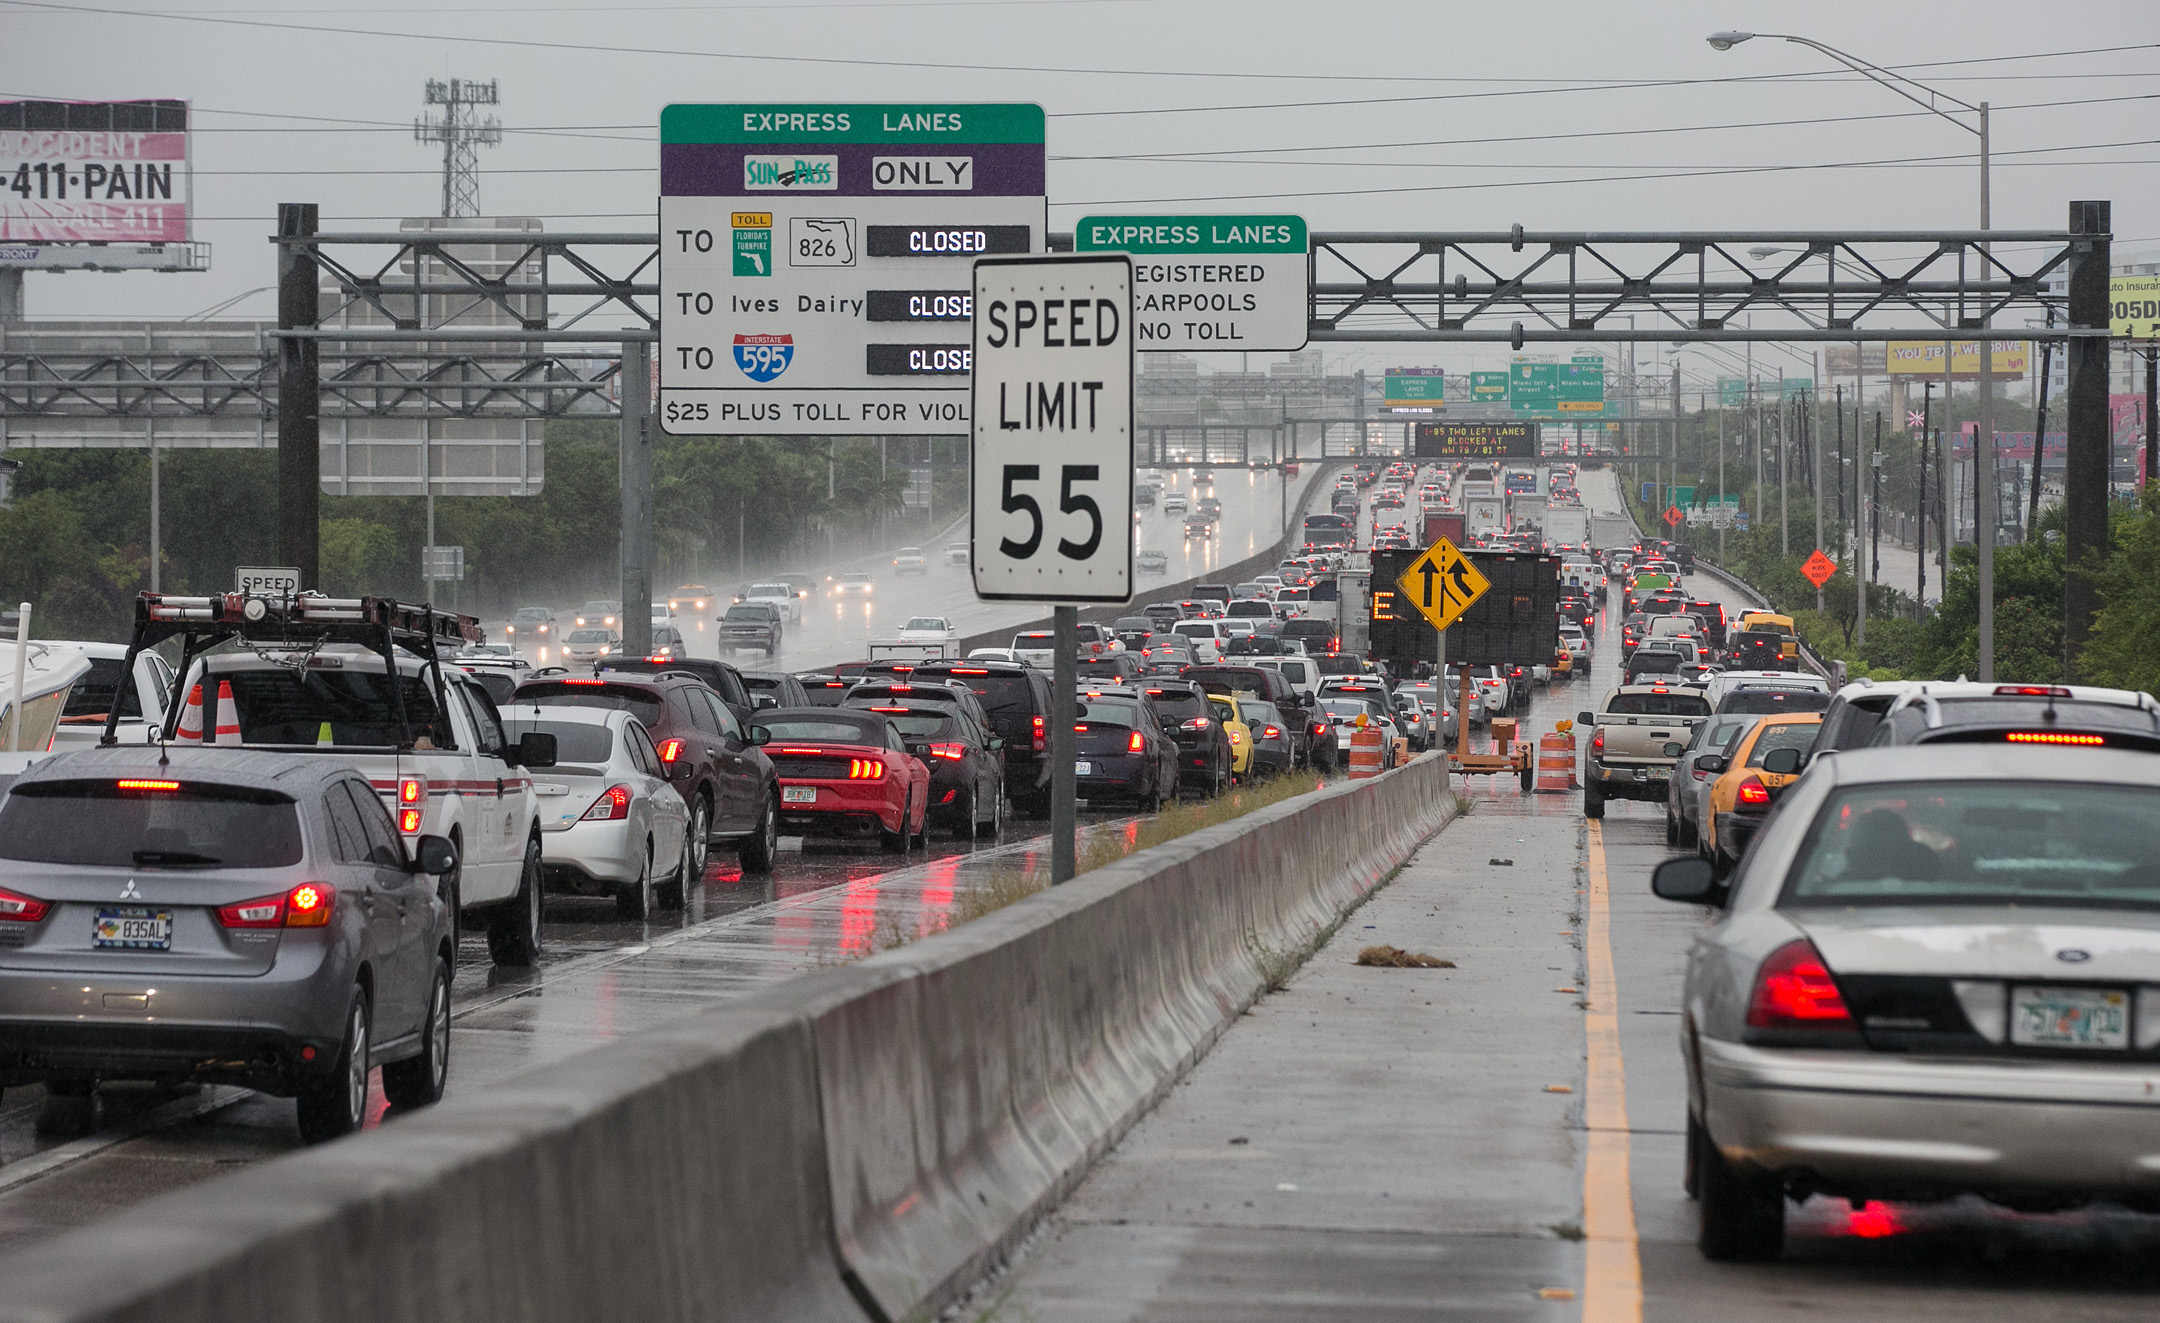 "<div class=""meta image-caption""><div class=""origin-logo origin-image none""><span>none</span></div><span class=""caption-text"">The I-95 Northbound is jammed bumper-to-bumper traffic as Tropical Storm Gordon passes by South Florida with wind gusts and heavy rainfall for the Labor Day holiday on Monday. (David Santiago/Miami Herald/TNS via Getty Images)</span></div>"